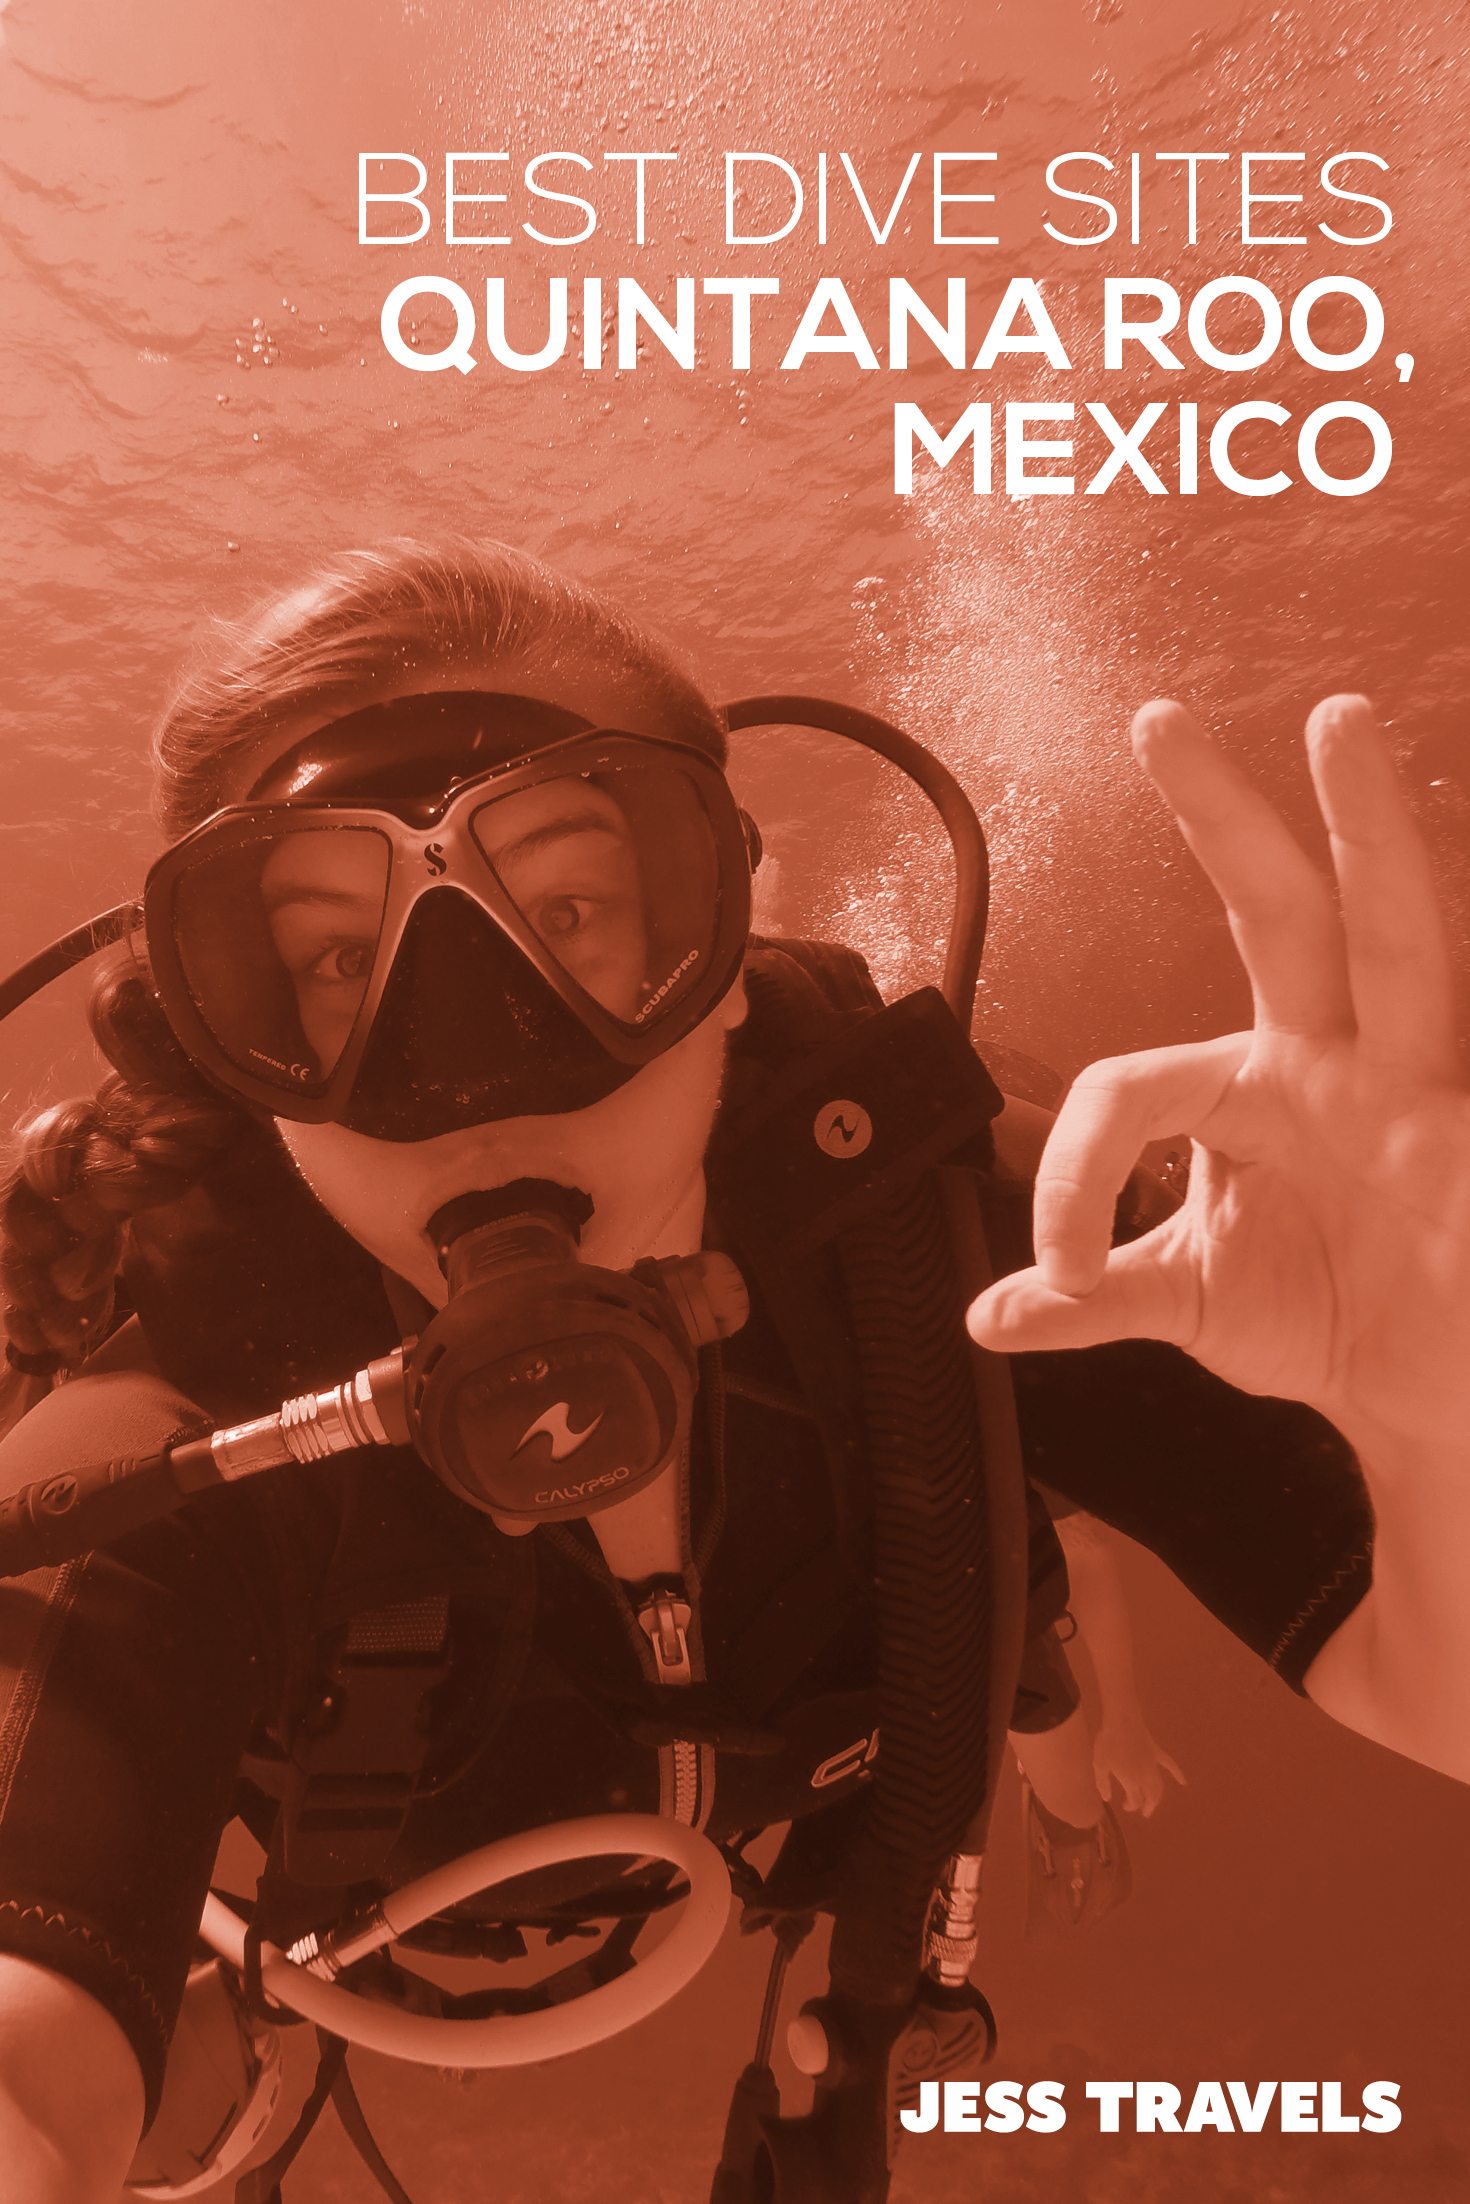 The 4 best scuba diving sites in Quintana Roo - Mexico. This covers the Playa del Carmen, Cozumel, Cancun and Tulum area. #mexico #scubadiving